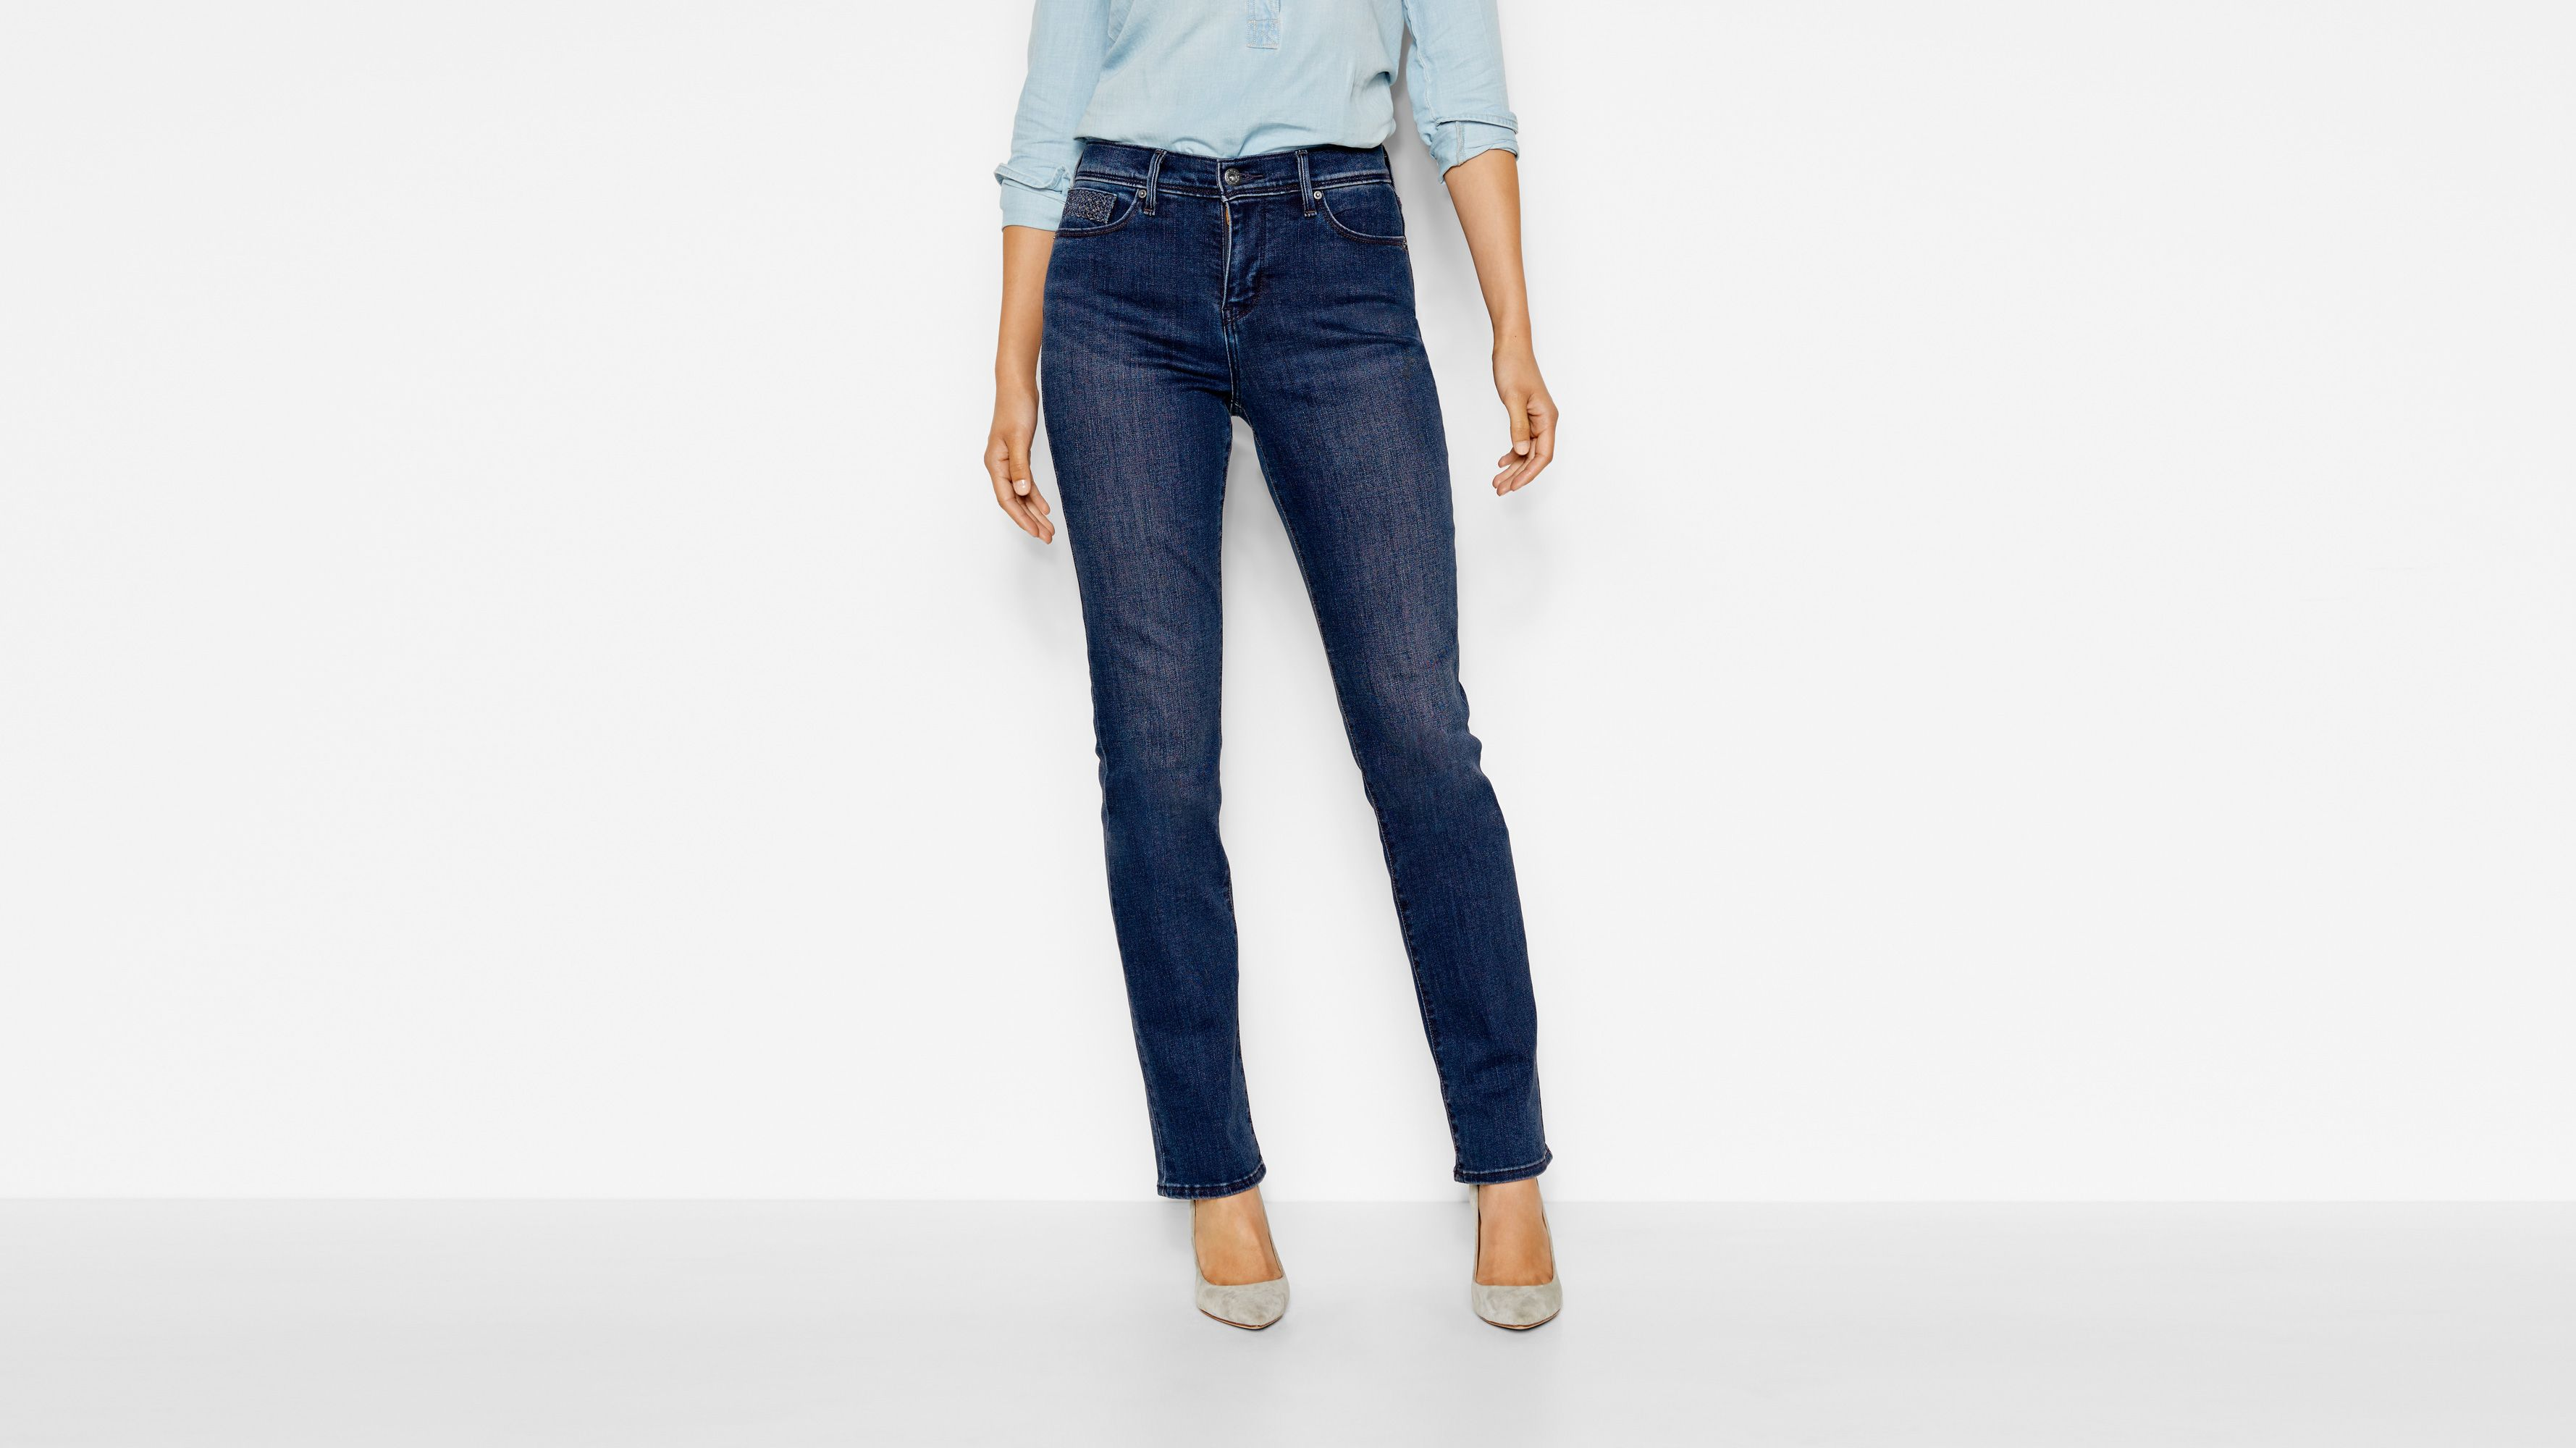 512™ Perfectly Slimming Straight Jeans - Dark Mineral